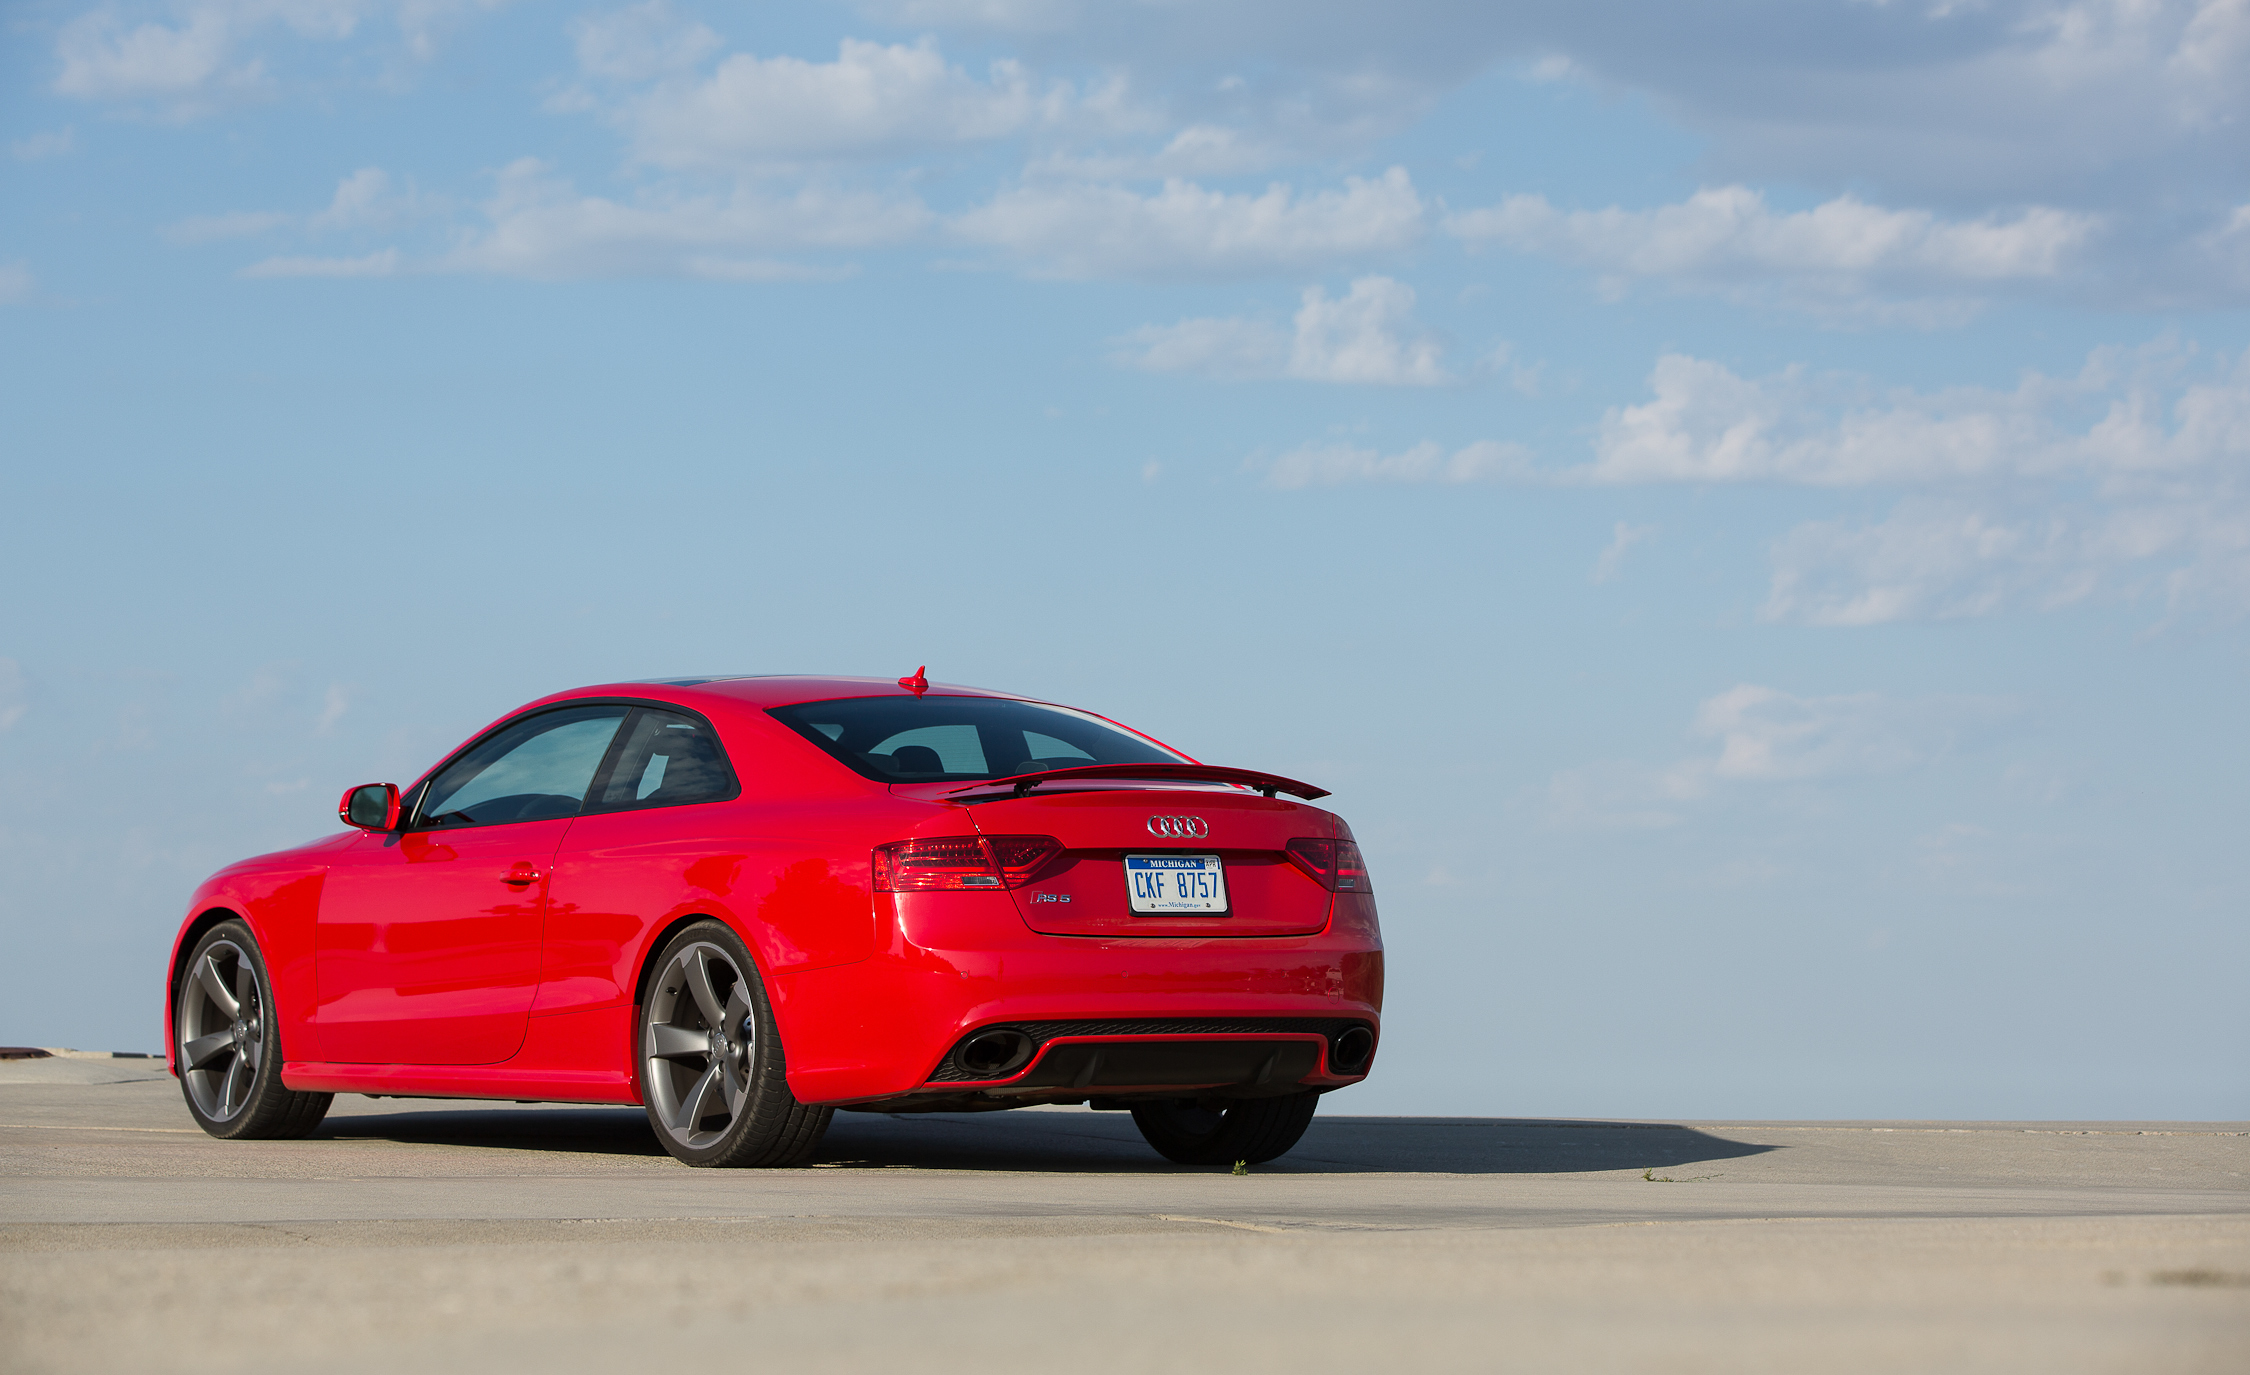 2013 Audi RS 5 Exterior Rear And Side (View 21 of 41)